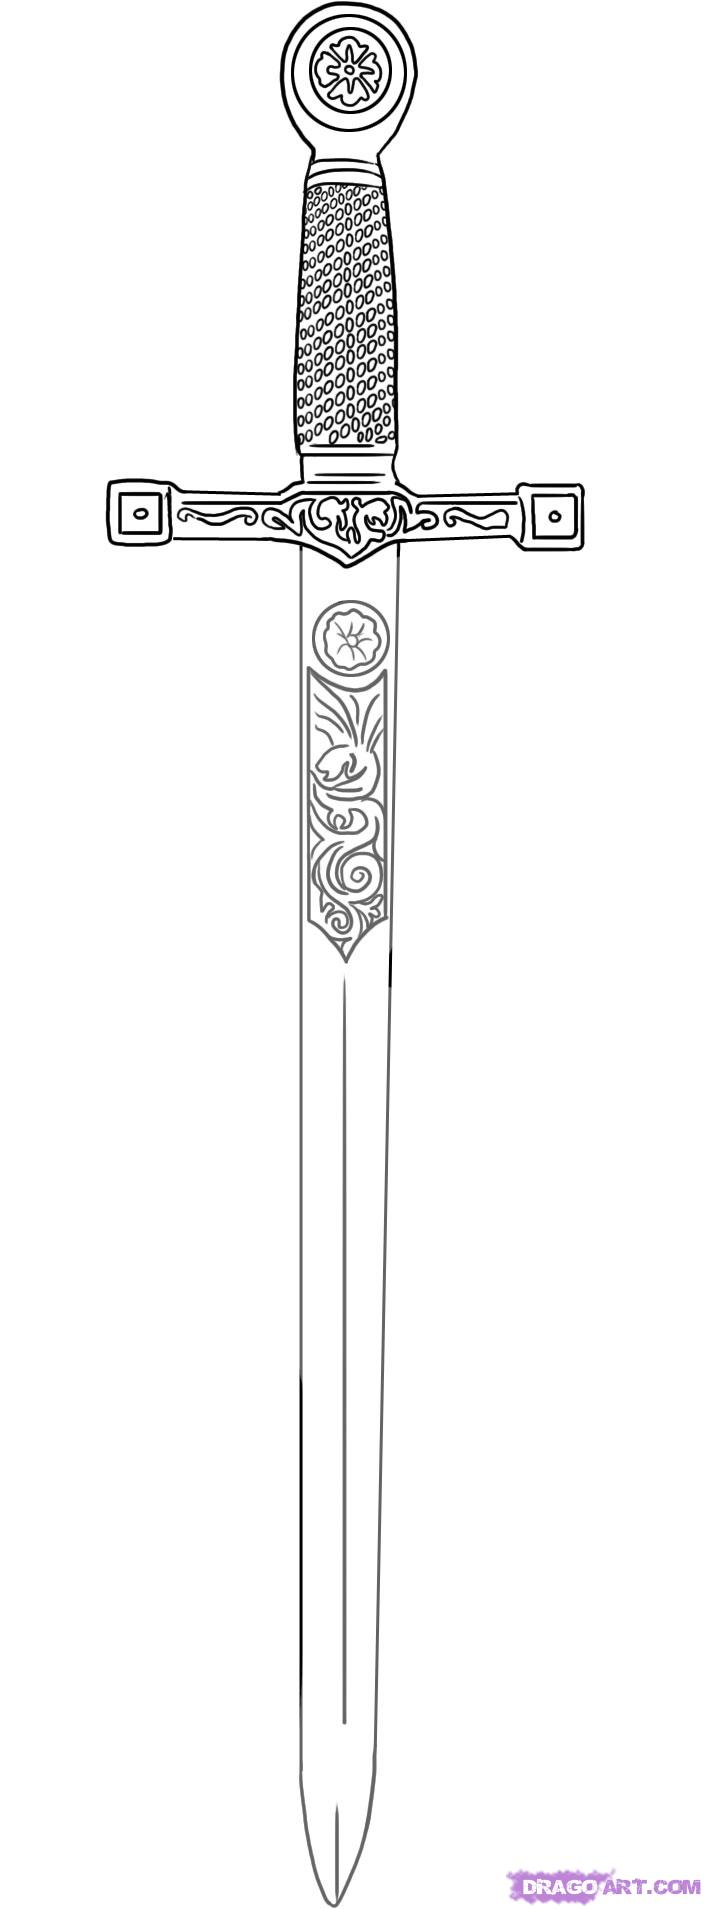 Drawn weapon sword 65 about Pinterest on weapons